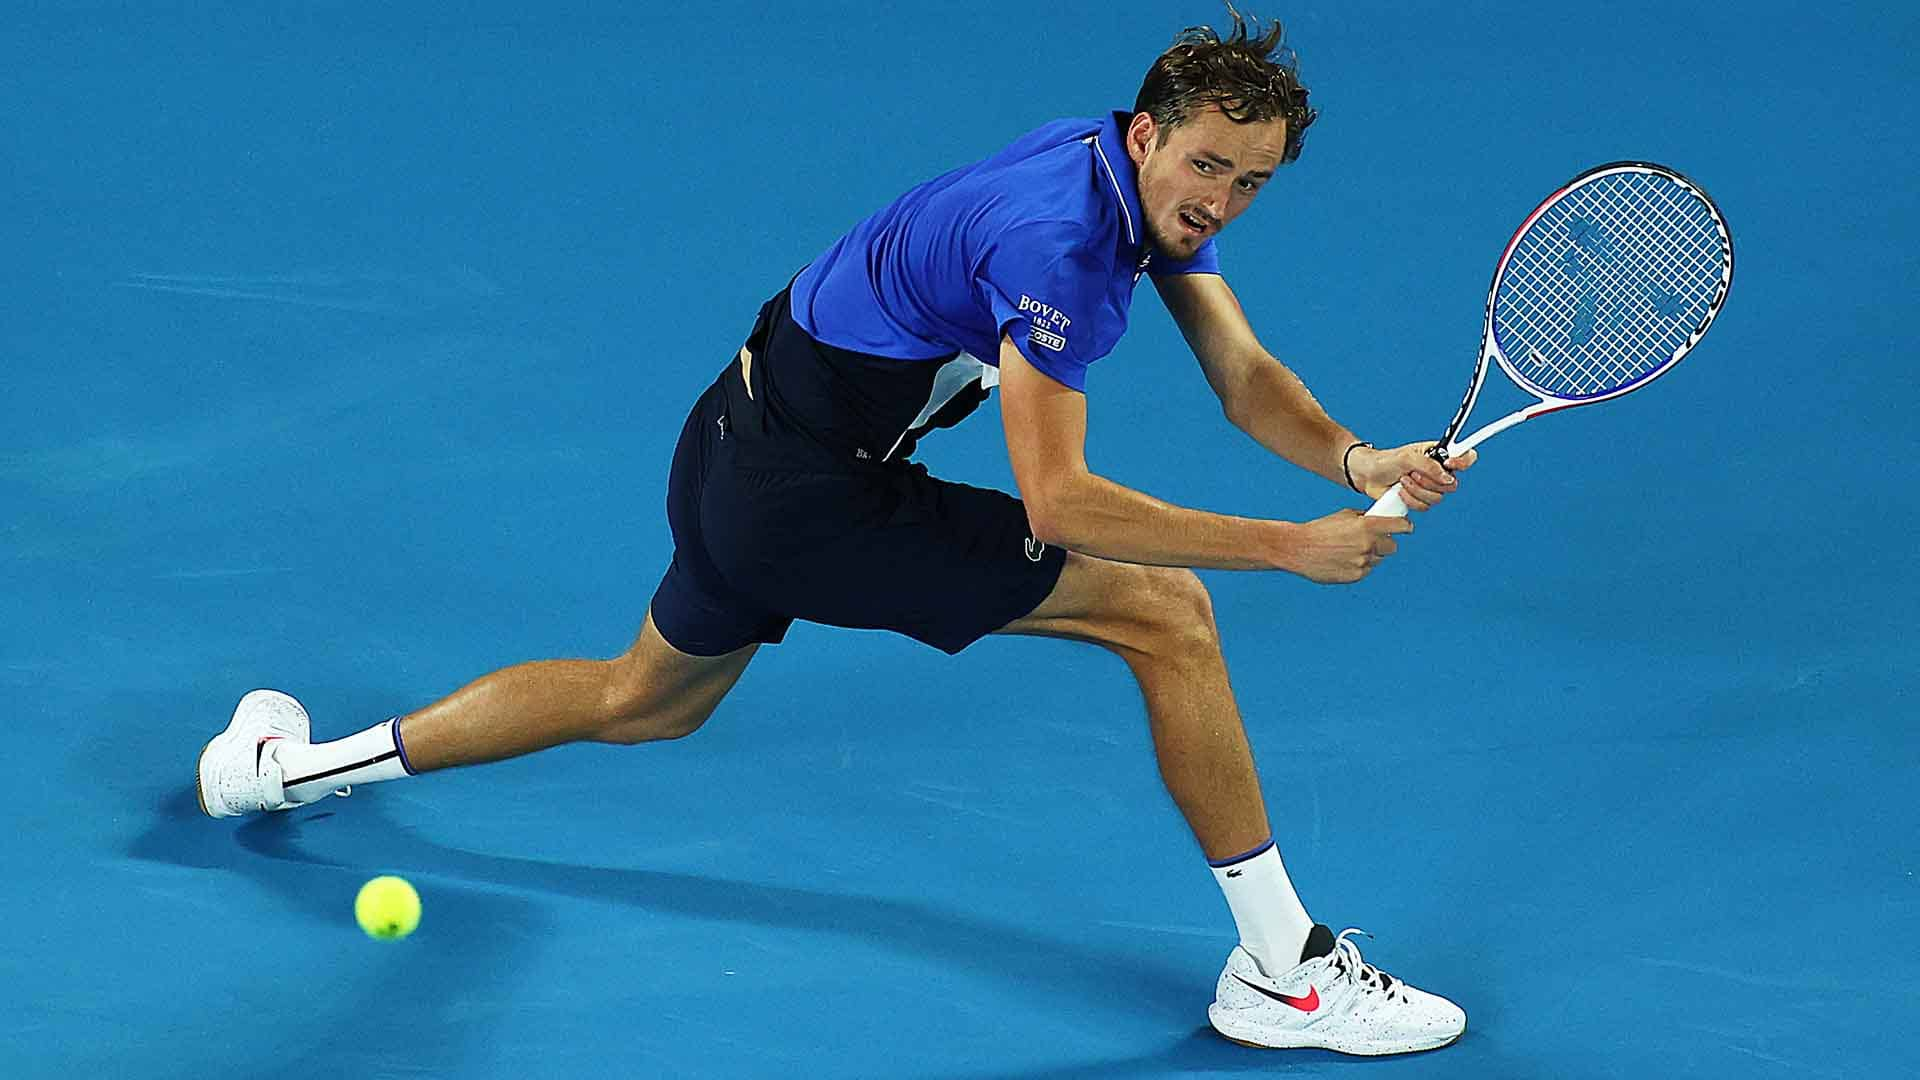 Daniil Medvedev is aiming to lift his first Grand Slam title at the Australian Open.